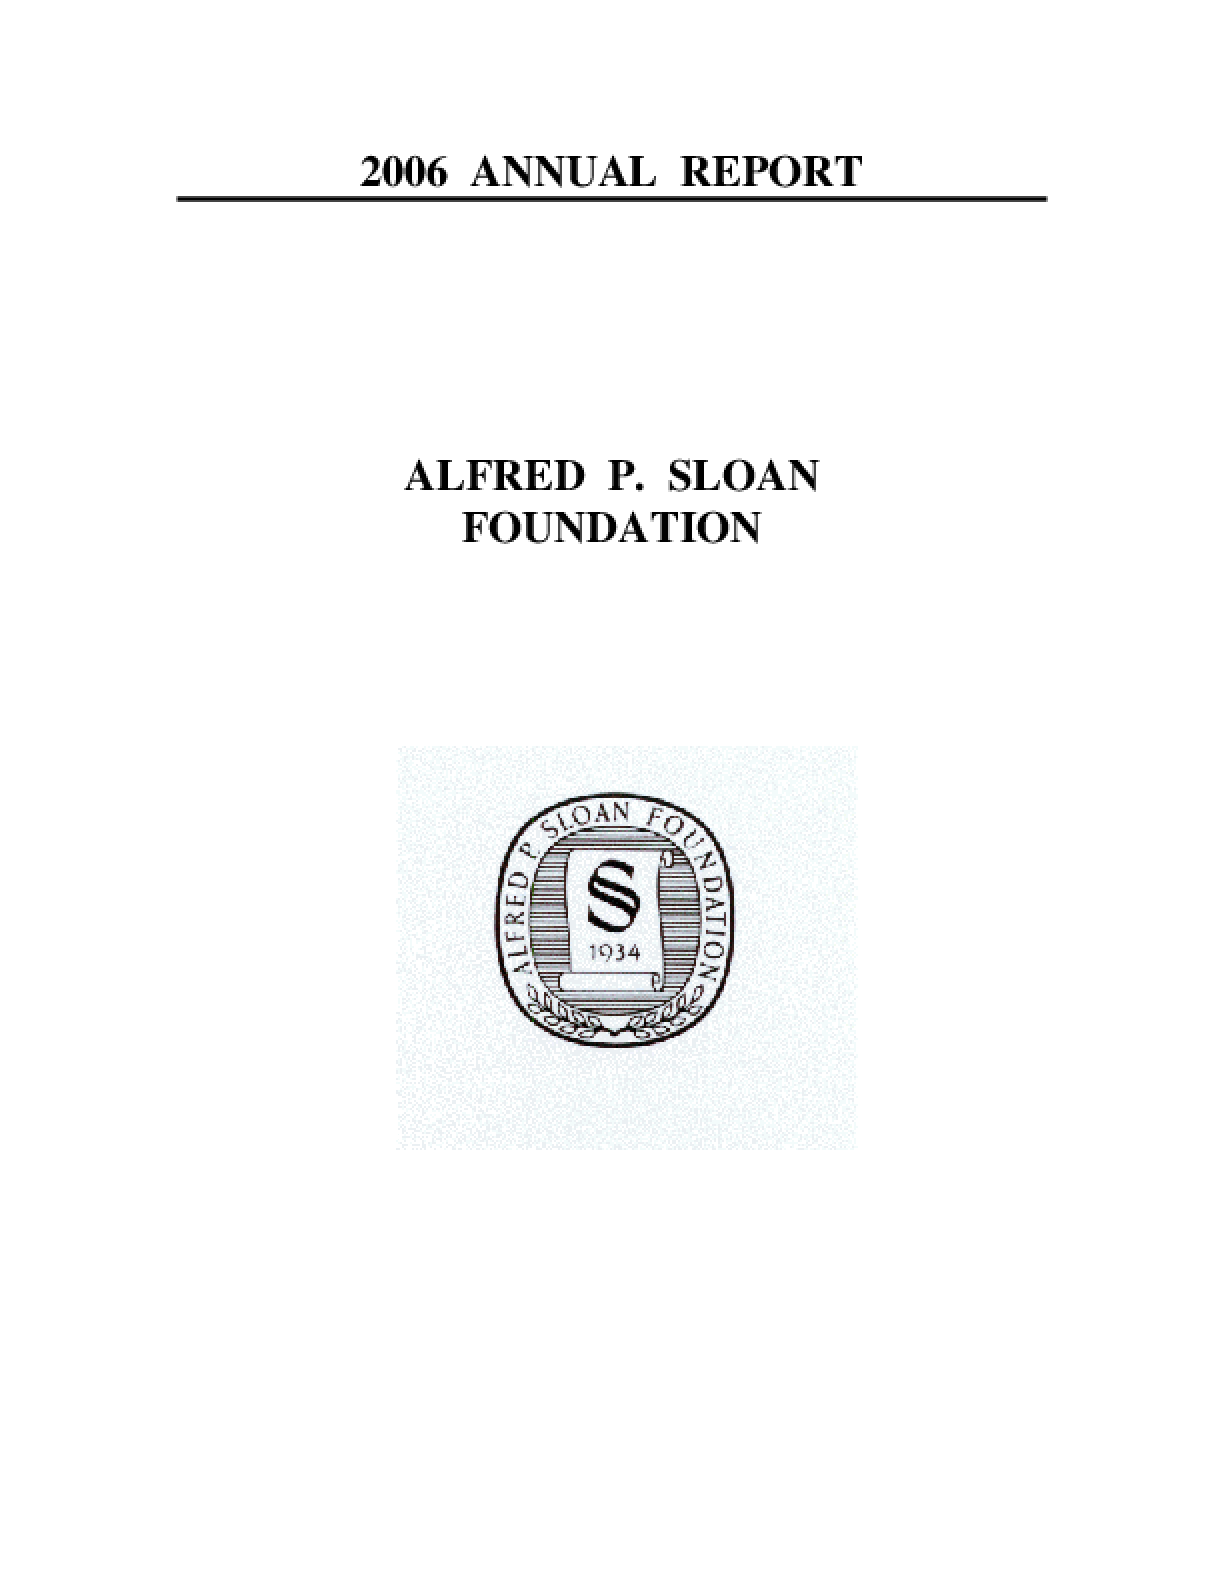 Alfred P. Sloan Foundation - 2006 Annual Report